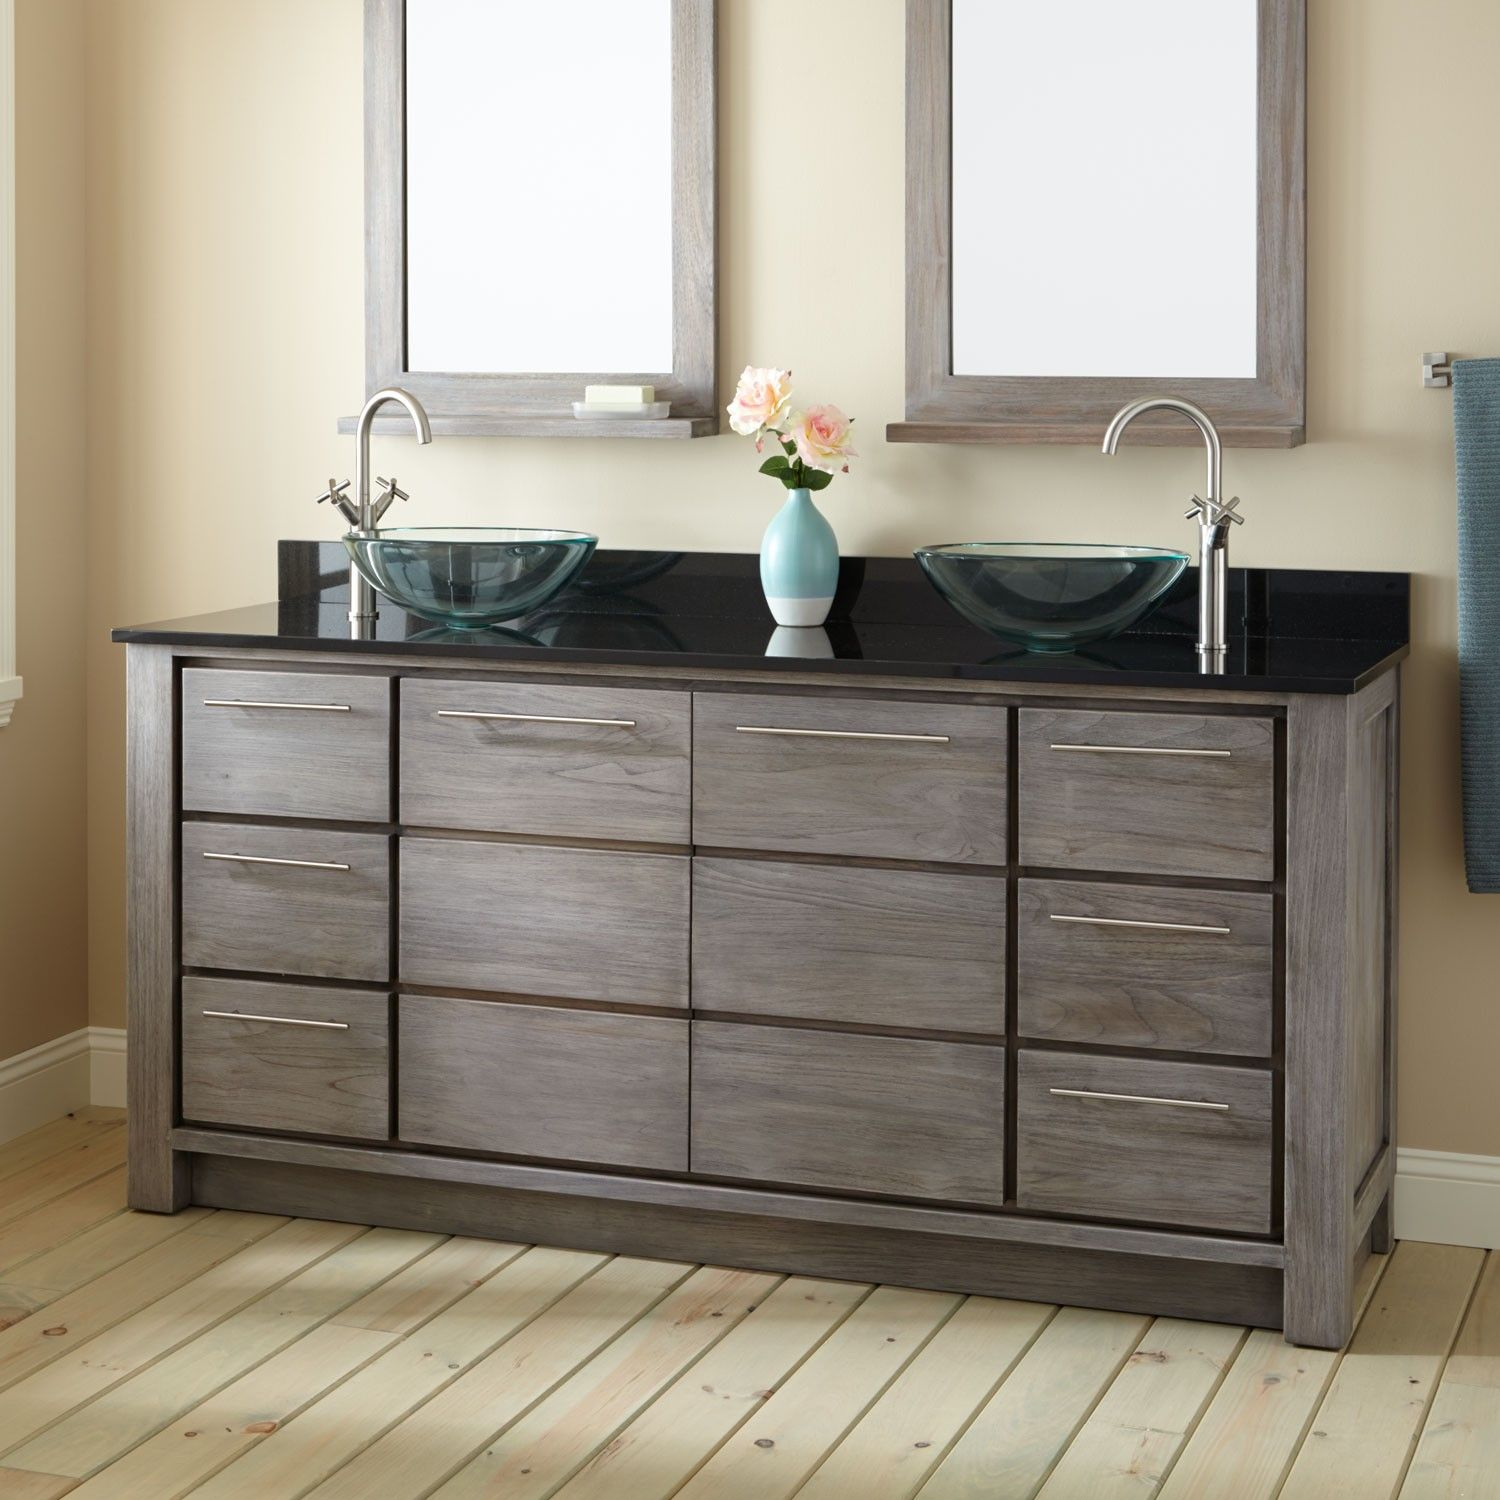 72 venica teak double vessel sinks vanity gray wash bathroom - Bathroom Cabinets Johannesburg